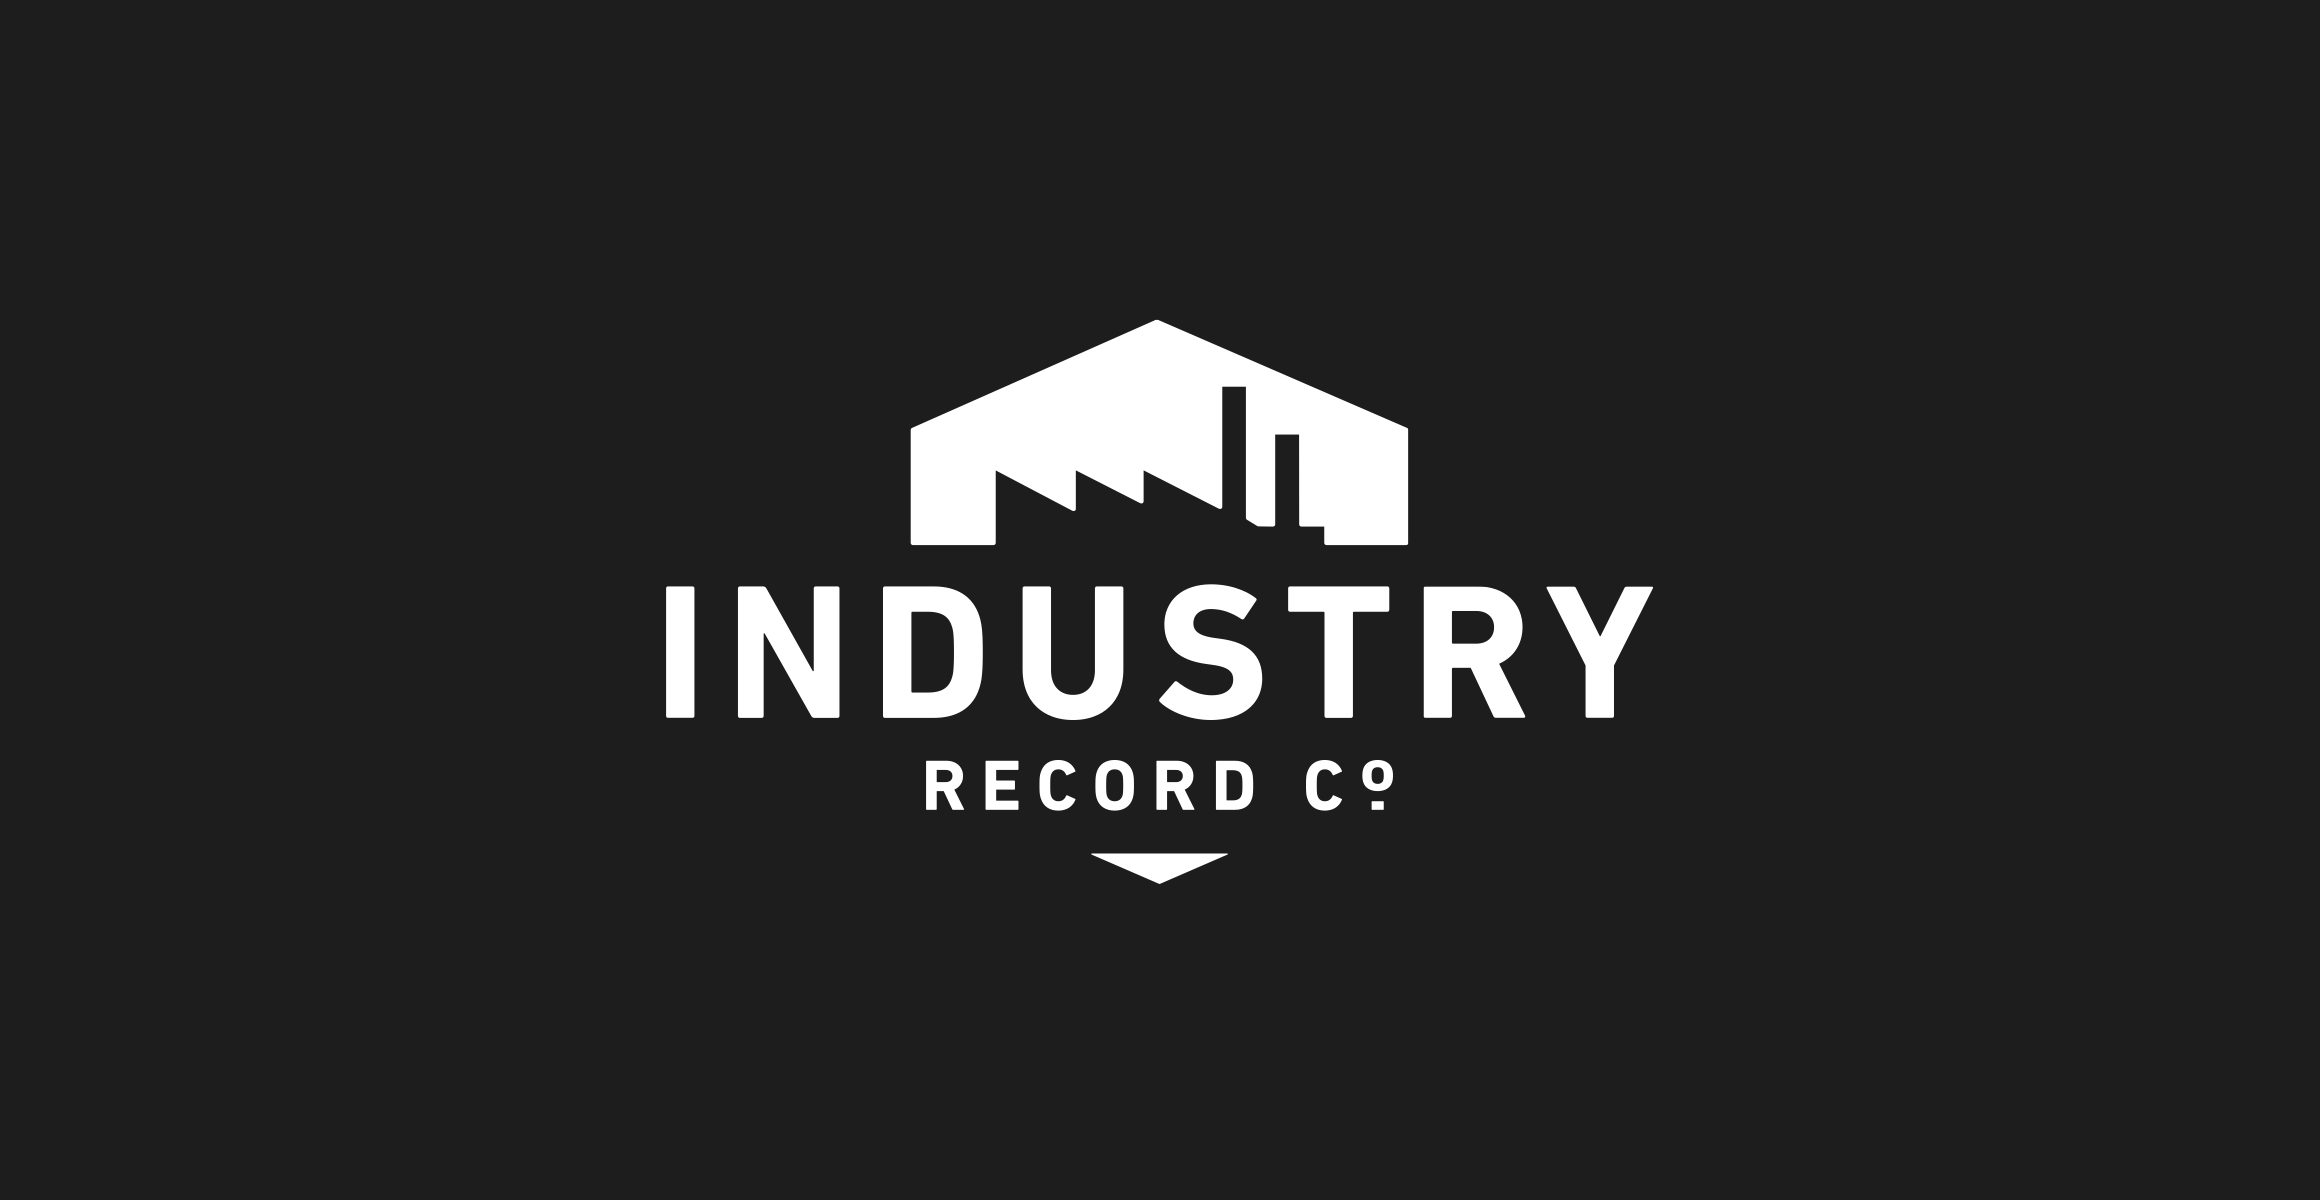 Industry Record Co. Logo